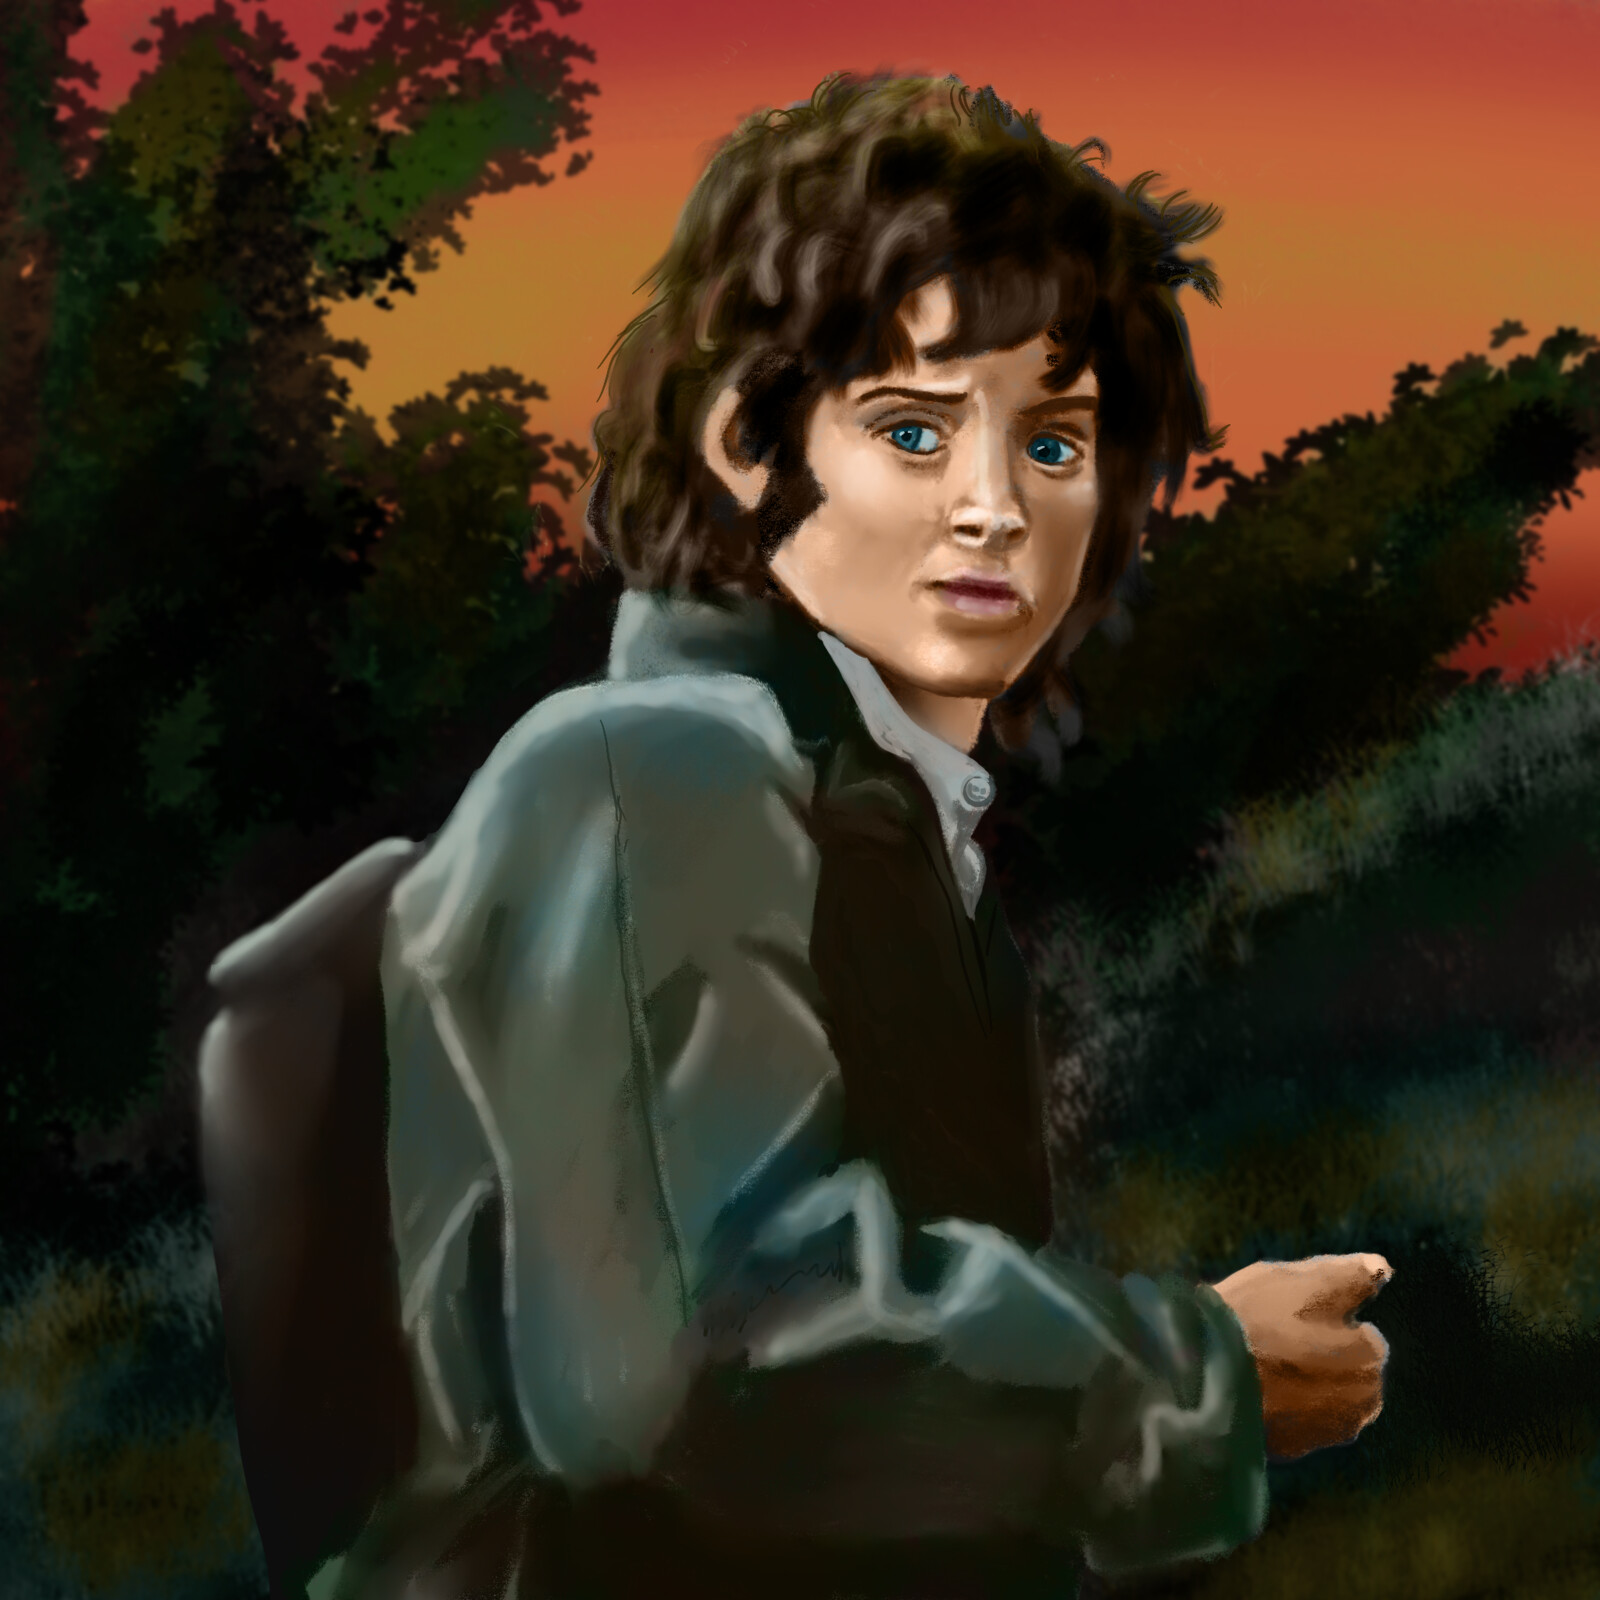 Mr. Frodo Baggins